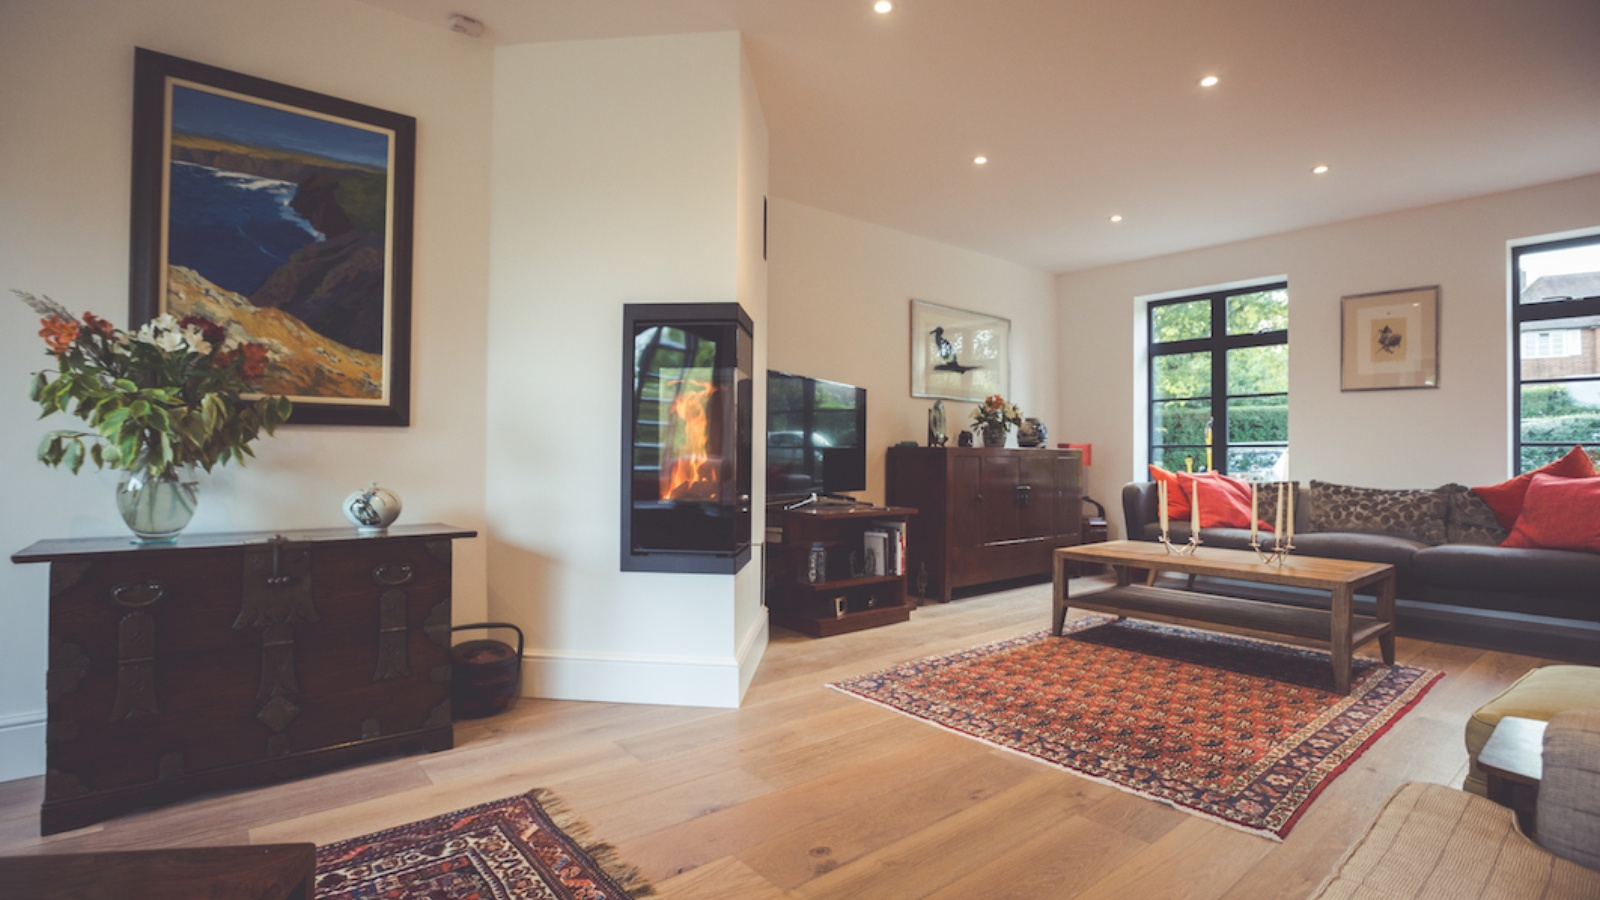 An architect-led design using a peninsular stove layout to breakup a large space